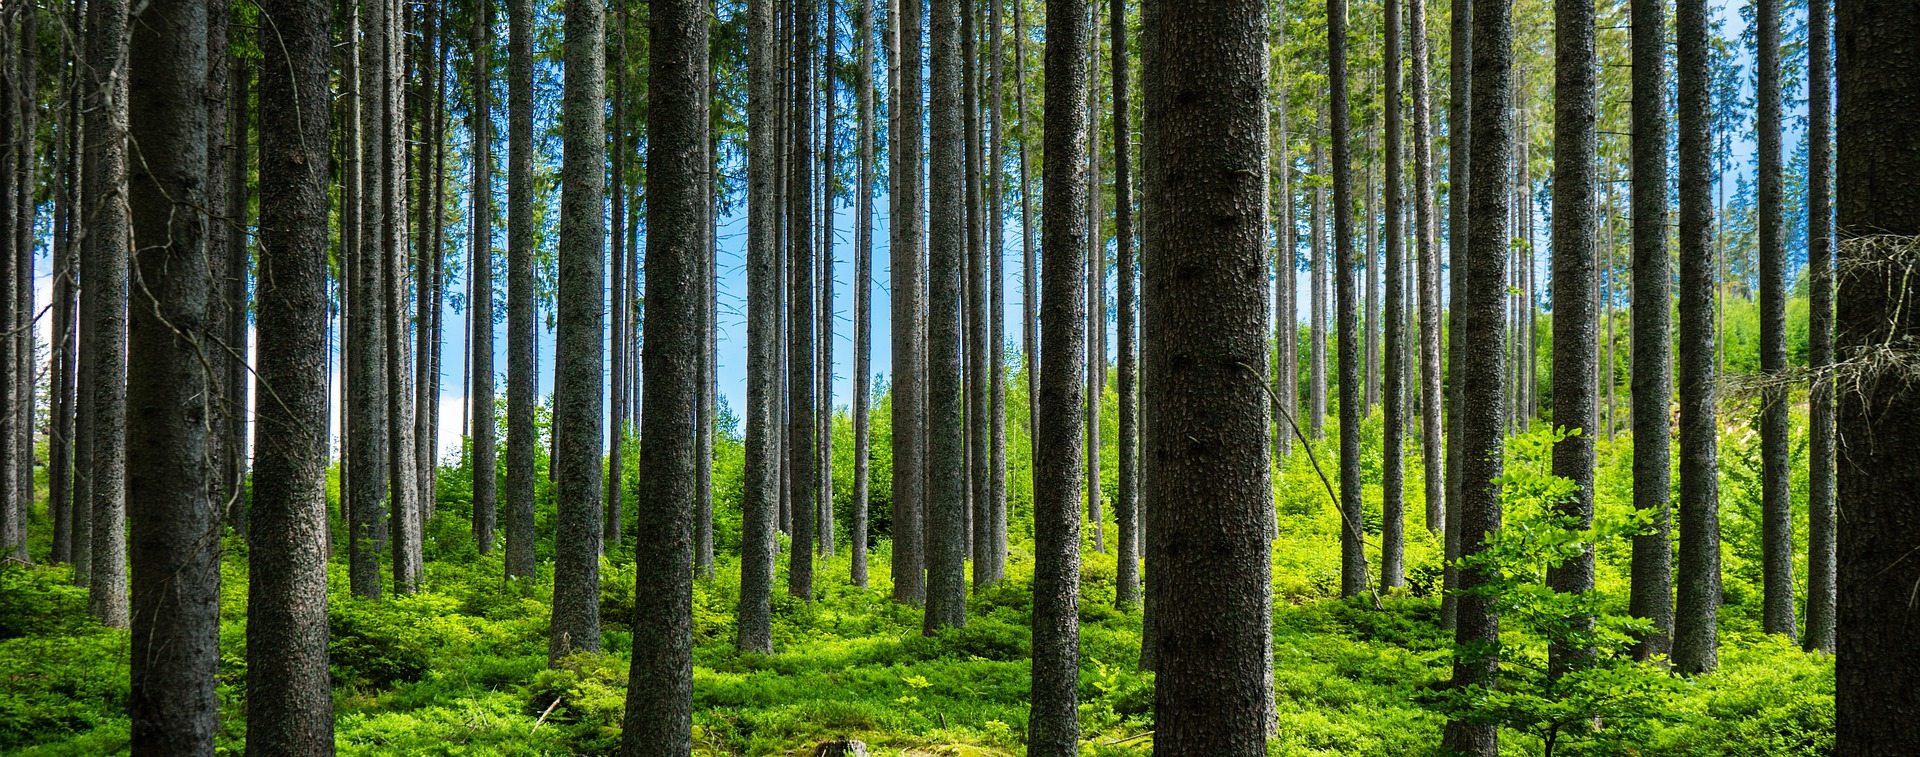 forest-5323328_1920